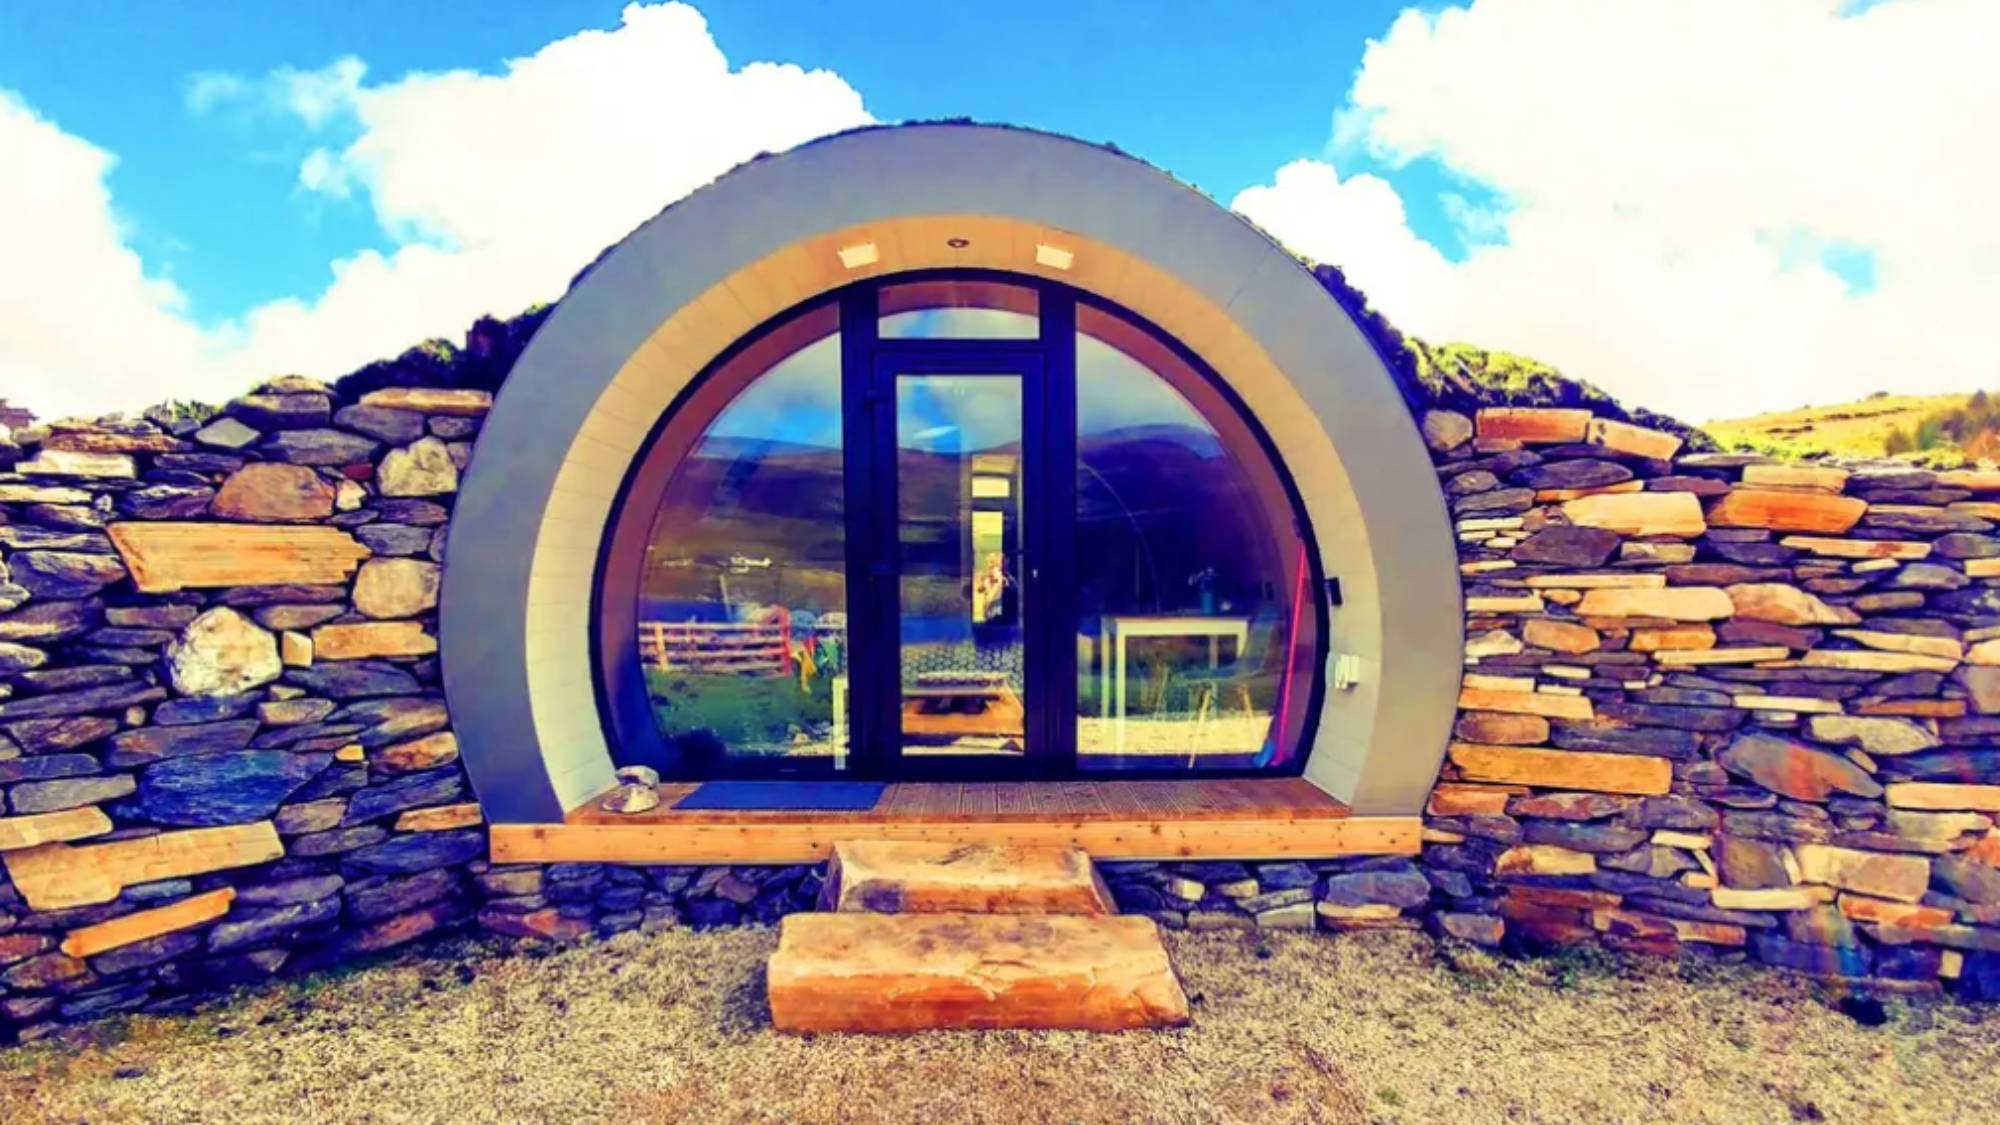 Forget NZ – you can stay in this Irish Hobbit pod for just £69 instead